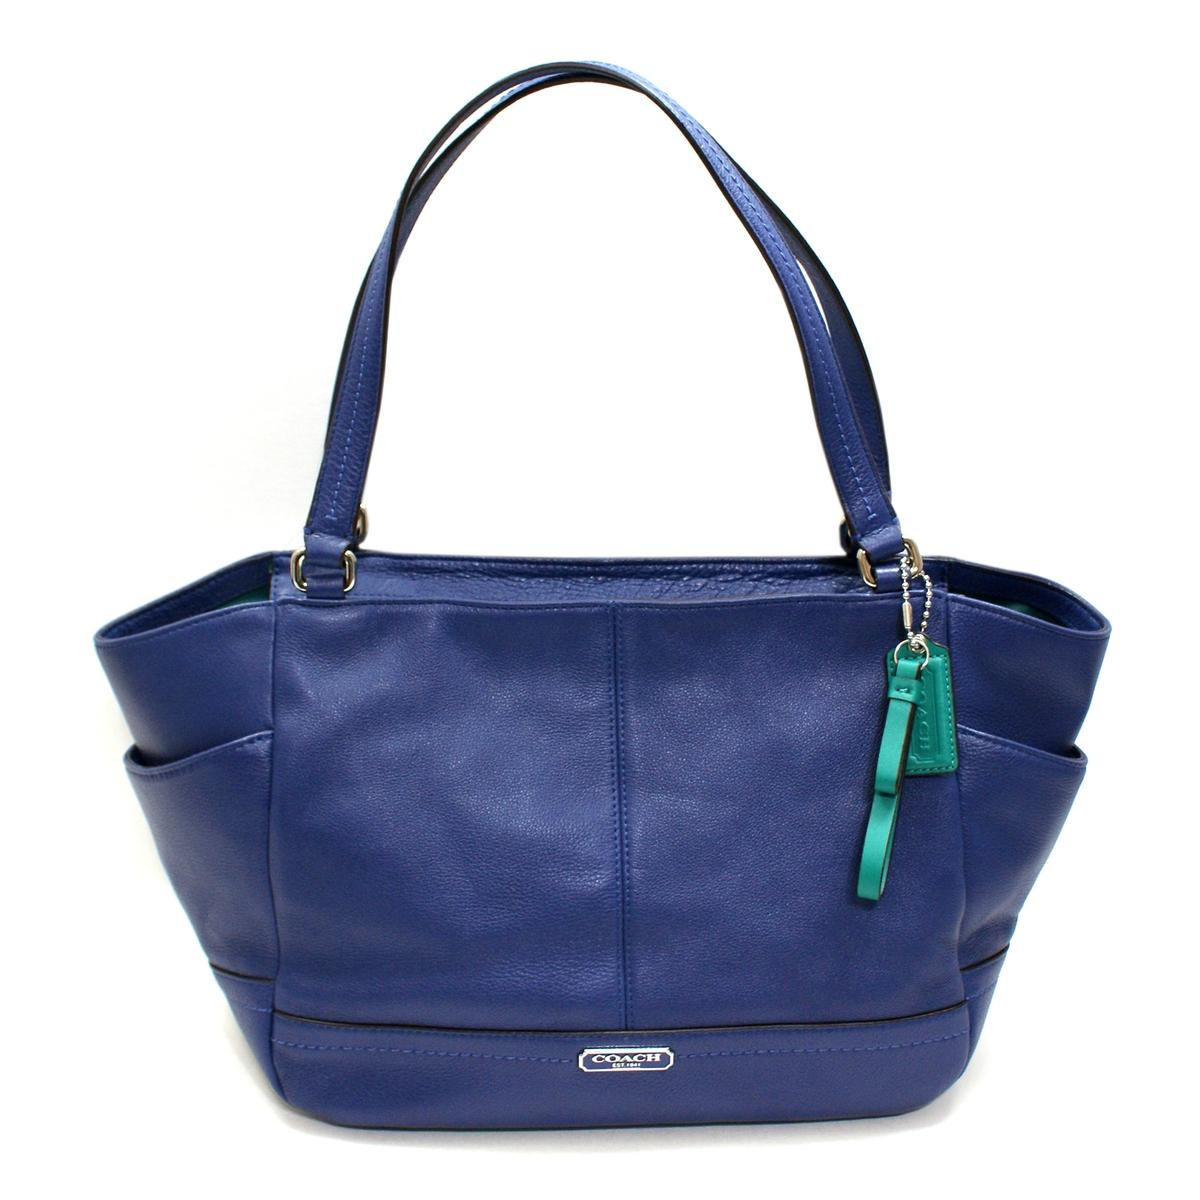 Home Coach Parker Leather Carrie Tote Shoulder Bag French Blue